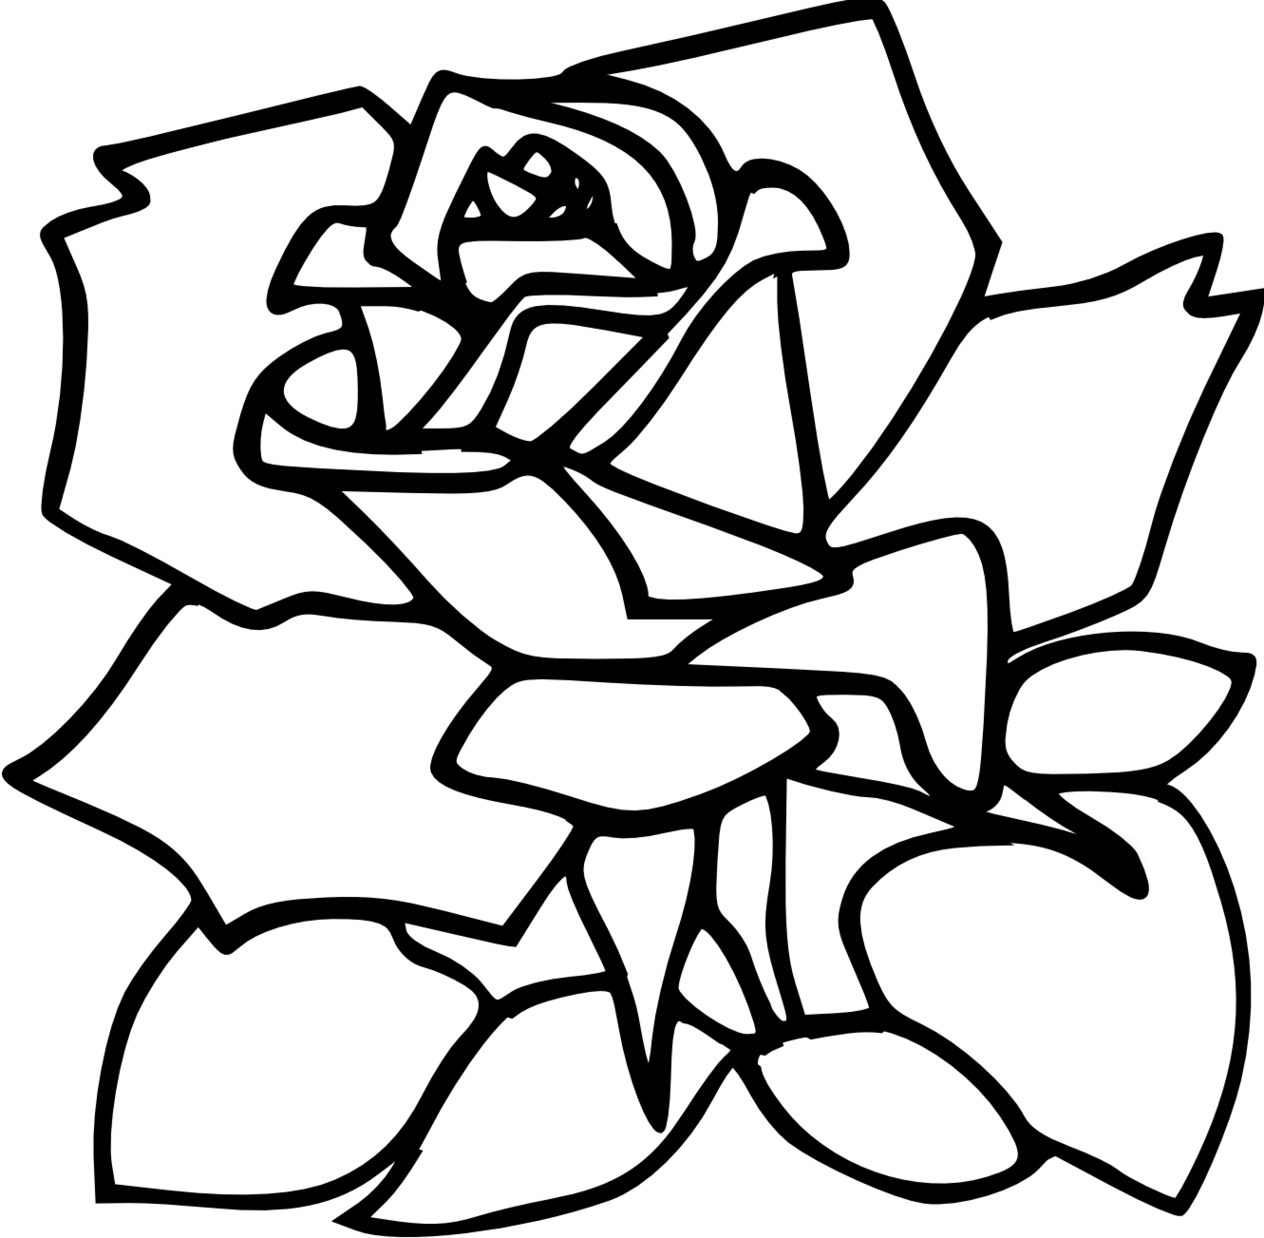 Line Art Rose Tattoo : Rose line drawings clipart best